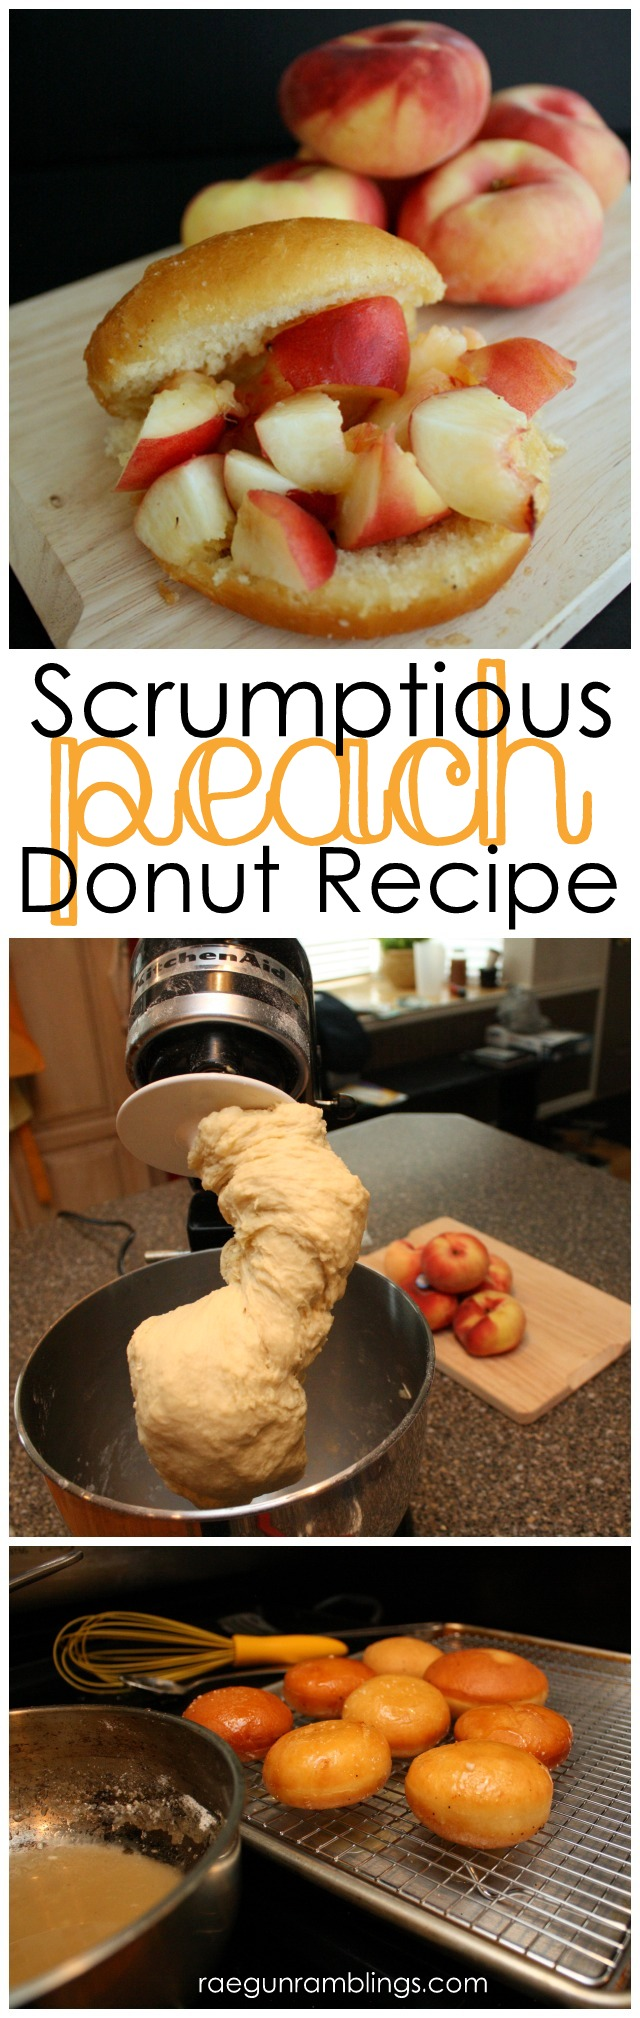 Great The Donut Man peach donut knock-off recipe. Super yummy at Rae Gun Ramblings